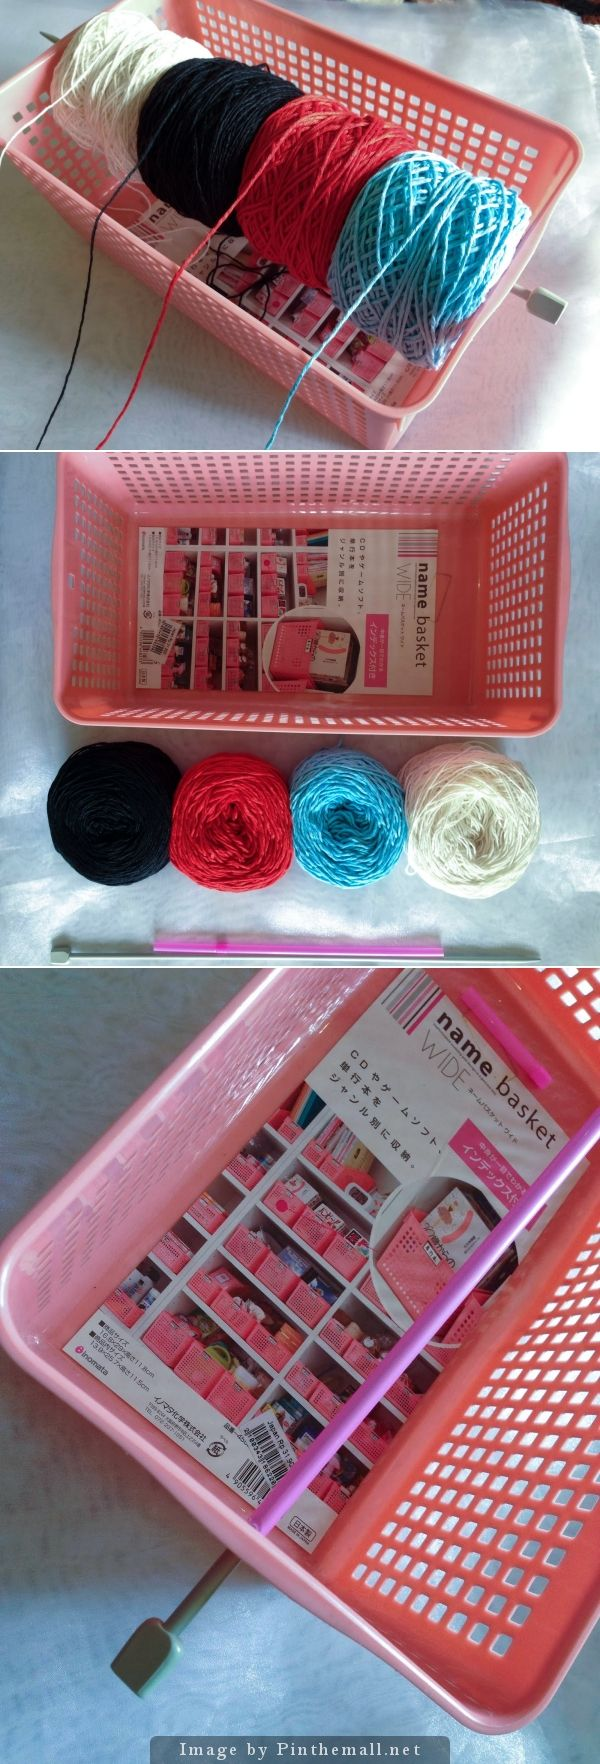 "Tutorial - ""Organize the yarn you're using in a project with this simple DIY. You need: 1 plastic basket with holes, 1 knitting needle, 1 drinking straw, and your yarn wound as in the picture. Voila! Easy as pie and there's room for your hooks, needles, scissors and pattern underneath, too!"" 4U from KnittingGuru ✿⊱╮Teresa Restegui http://www.pinterest.com/teretegui/✿⊱╮"